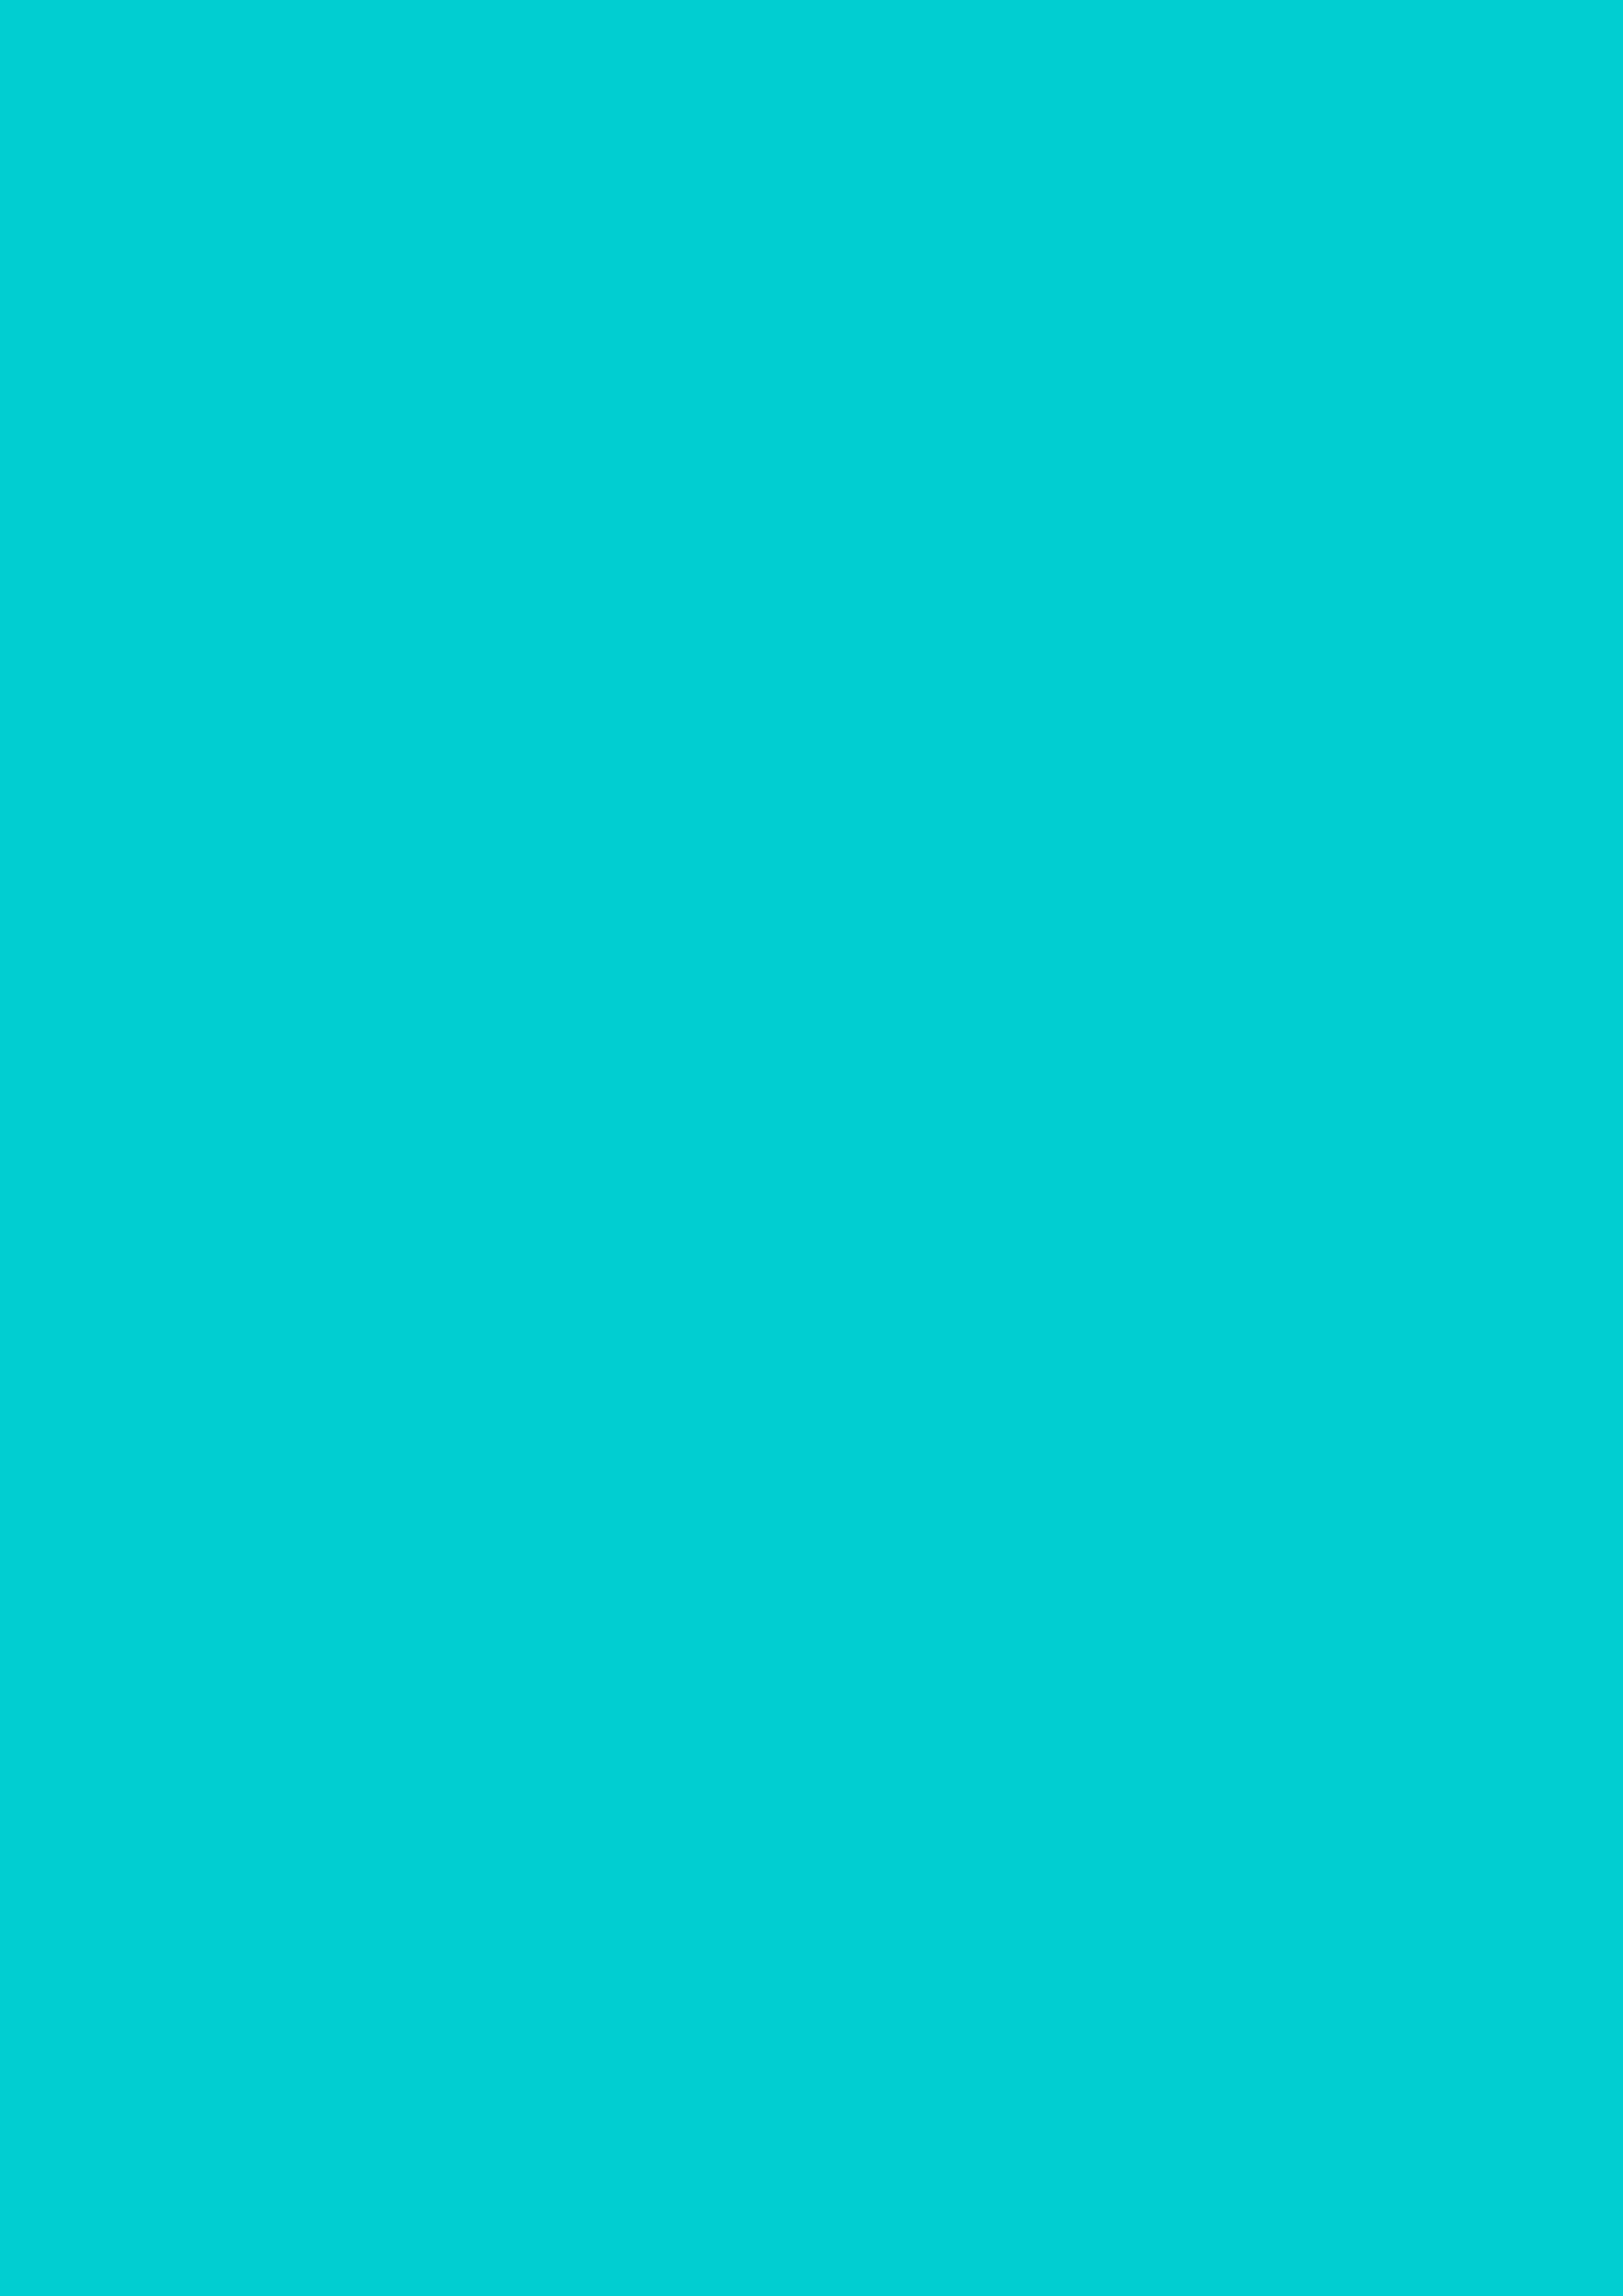 2480x3508 Dark Turquoise Solid Color Background